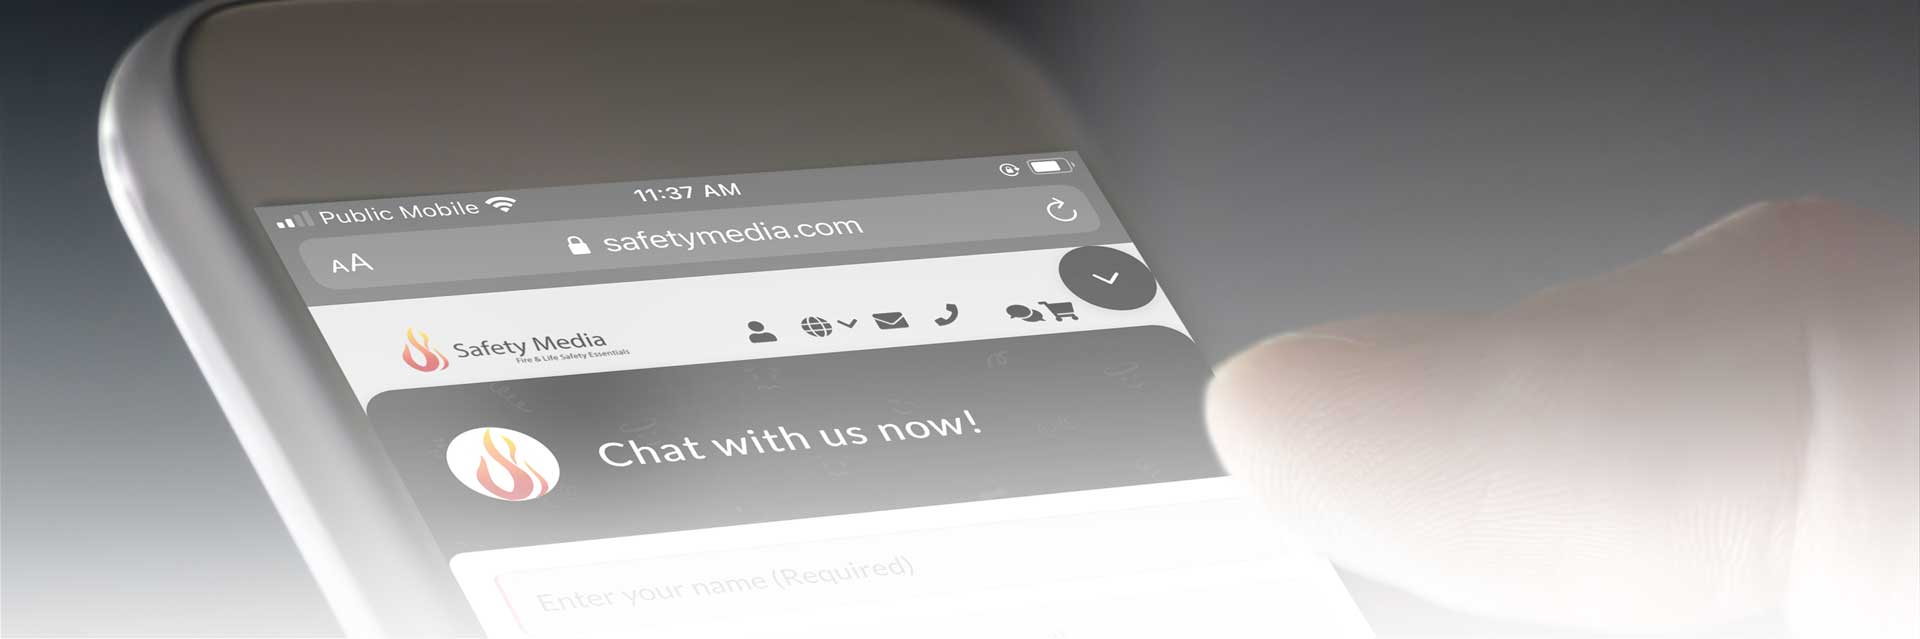 Banner Image; phone screen with Safety Media's web chat open